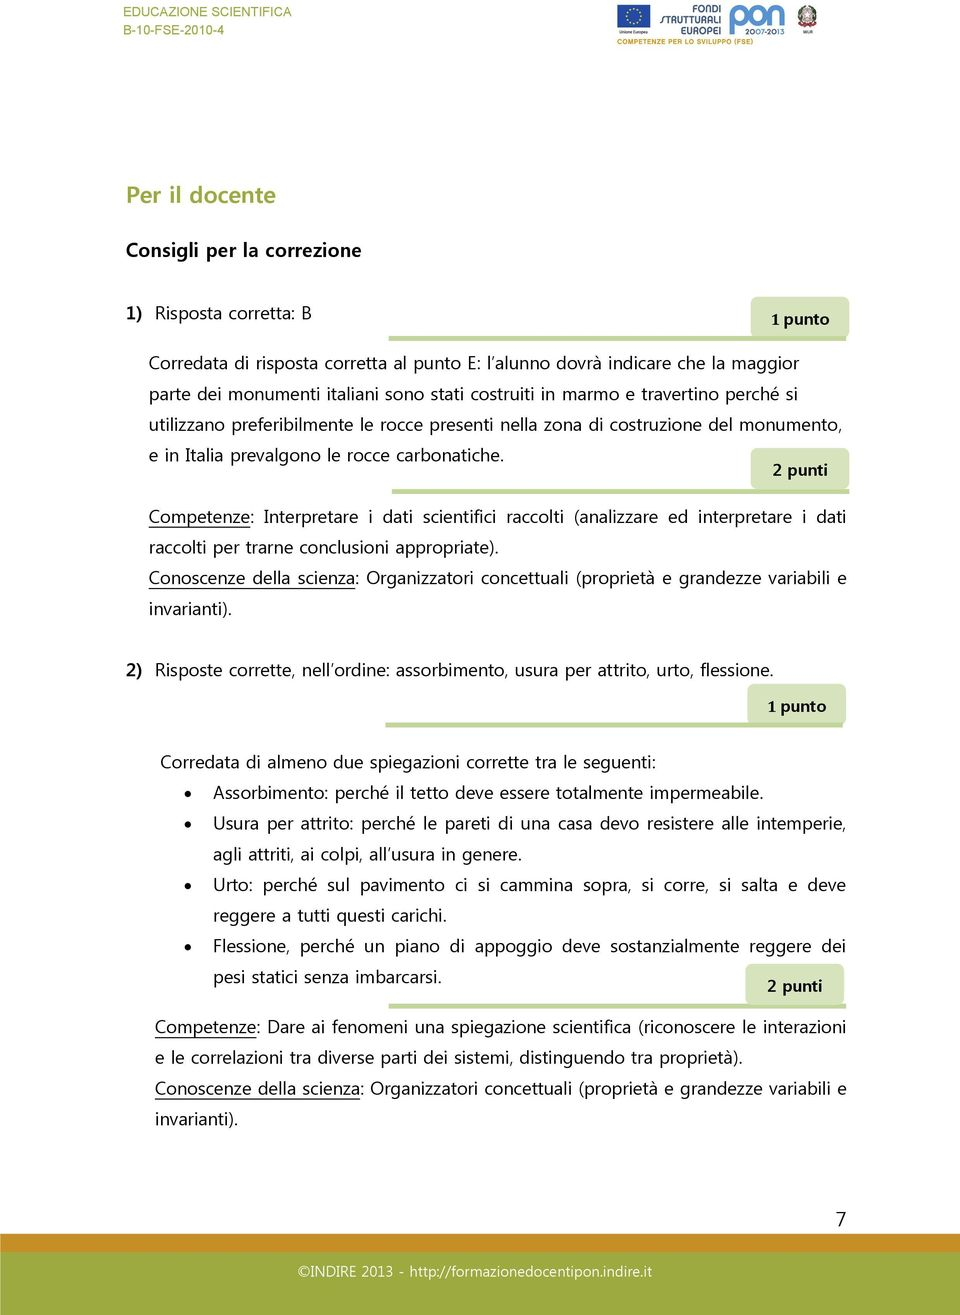 2 punti Competenze: Interpretare i dati scientifici raccolti (analizzare ed interpretare i dati raccolti per trarne conclusioni appropriate).